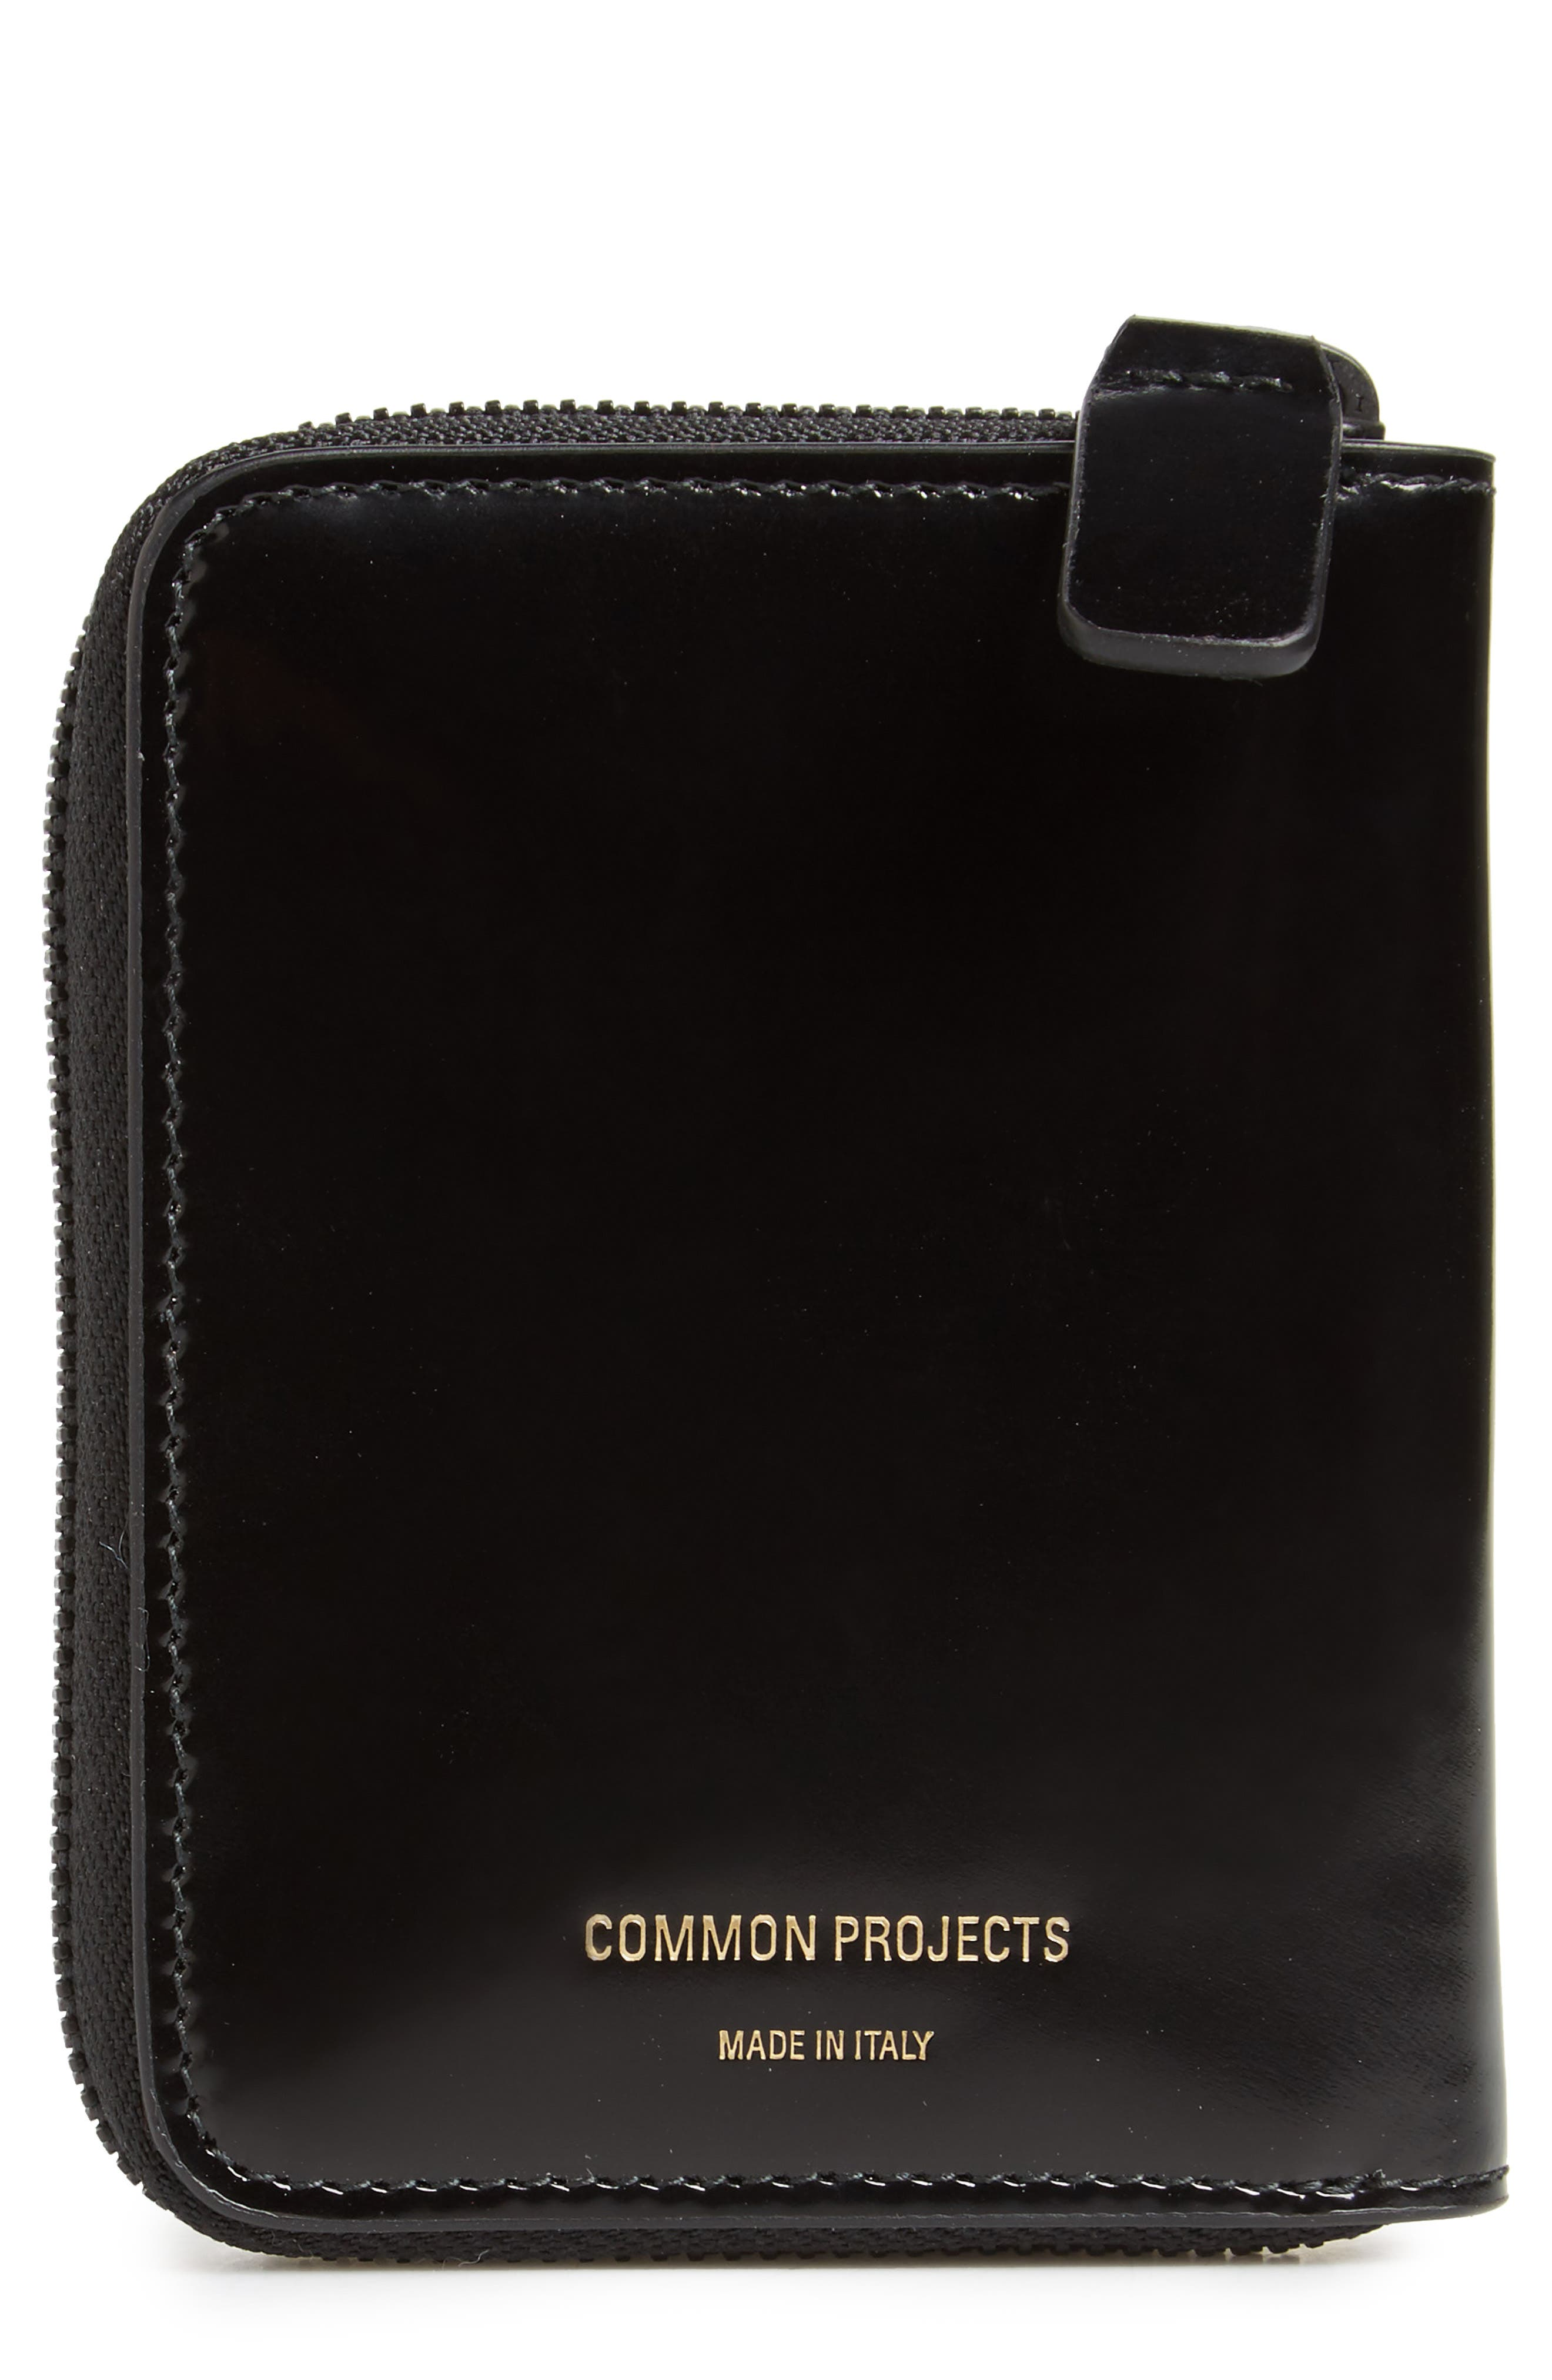 Patent Leather Zip Wallet,                             Main thumbnail 1, color,                             001